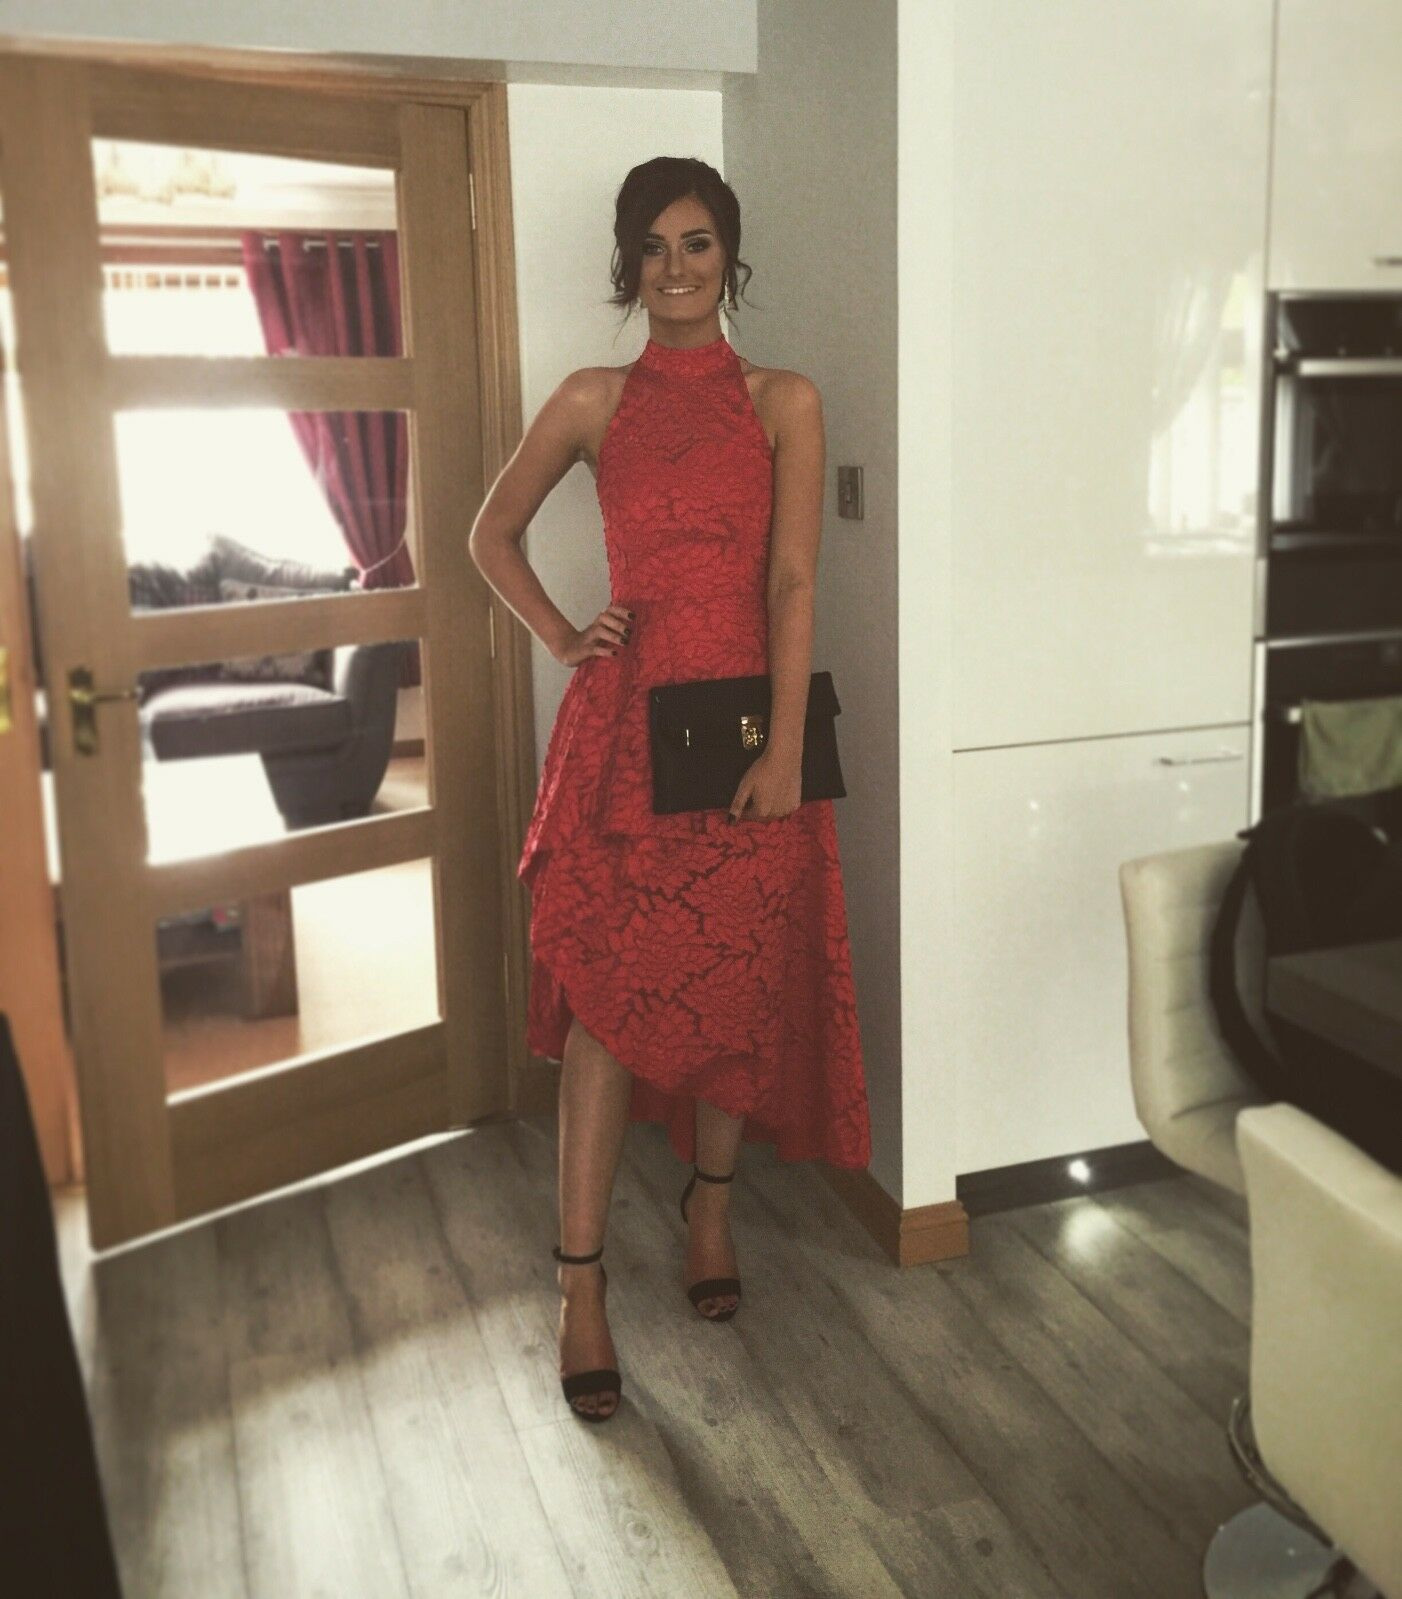 3a63f8705e Very asymmetric dress in size 8. condition. In immaculate nyrkyi6340 ...